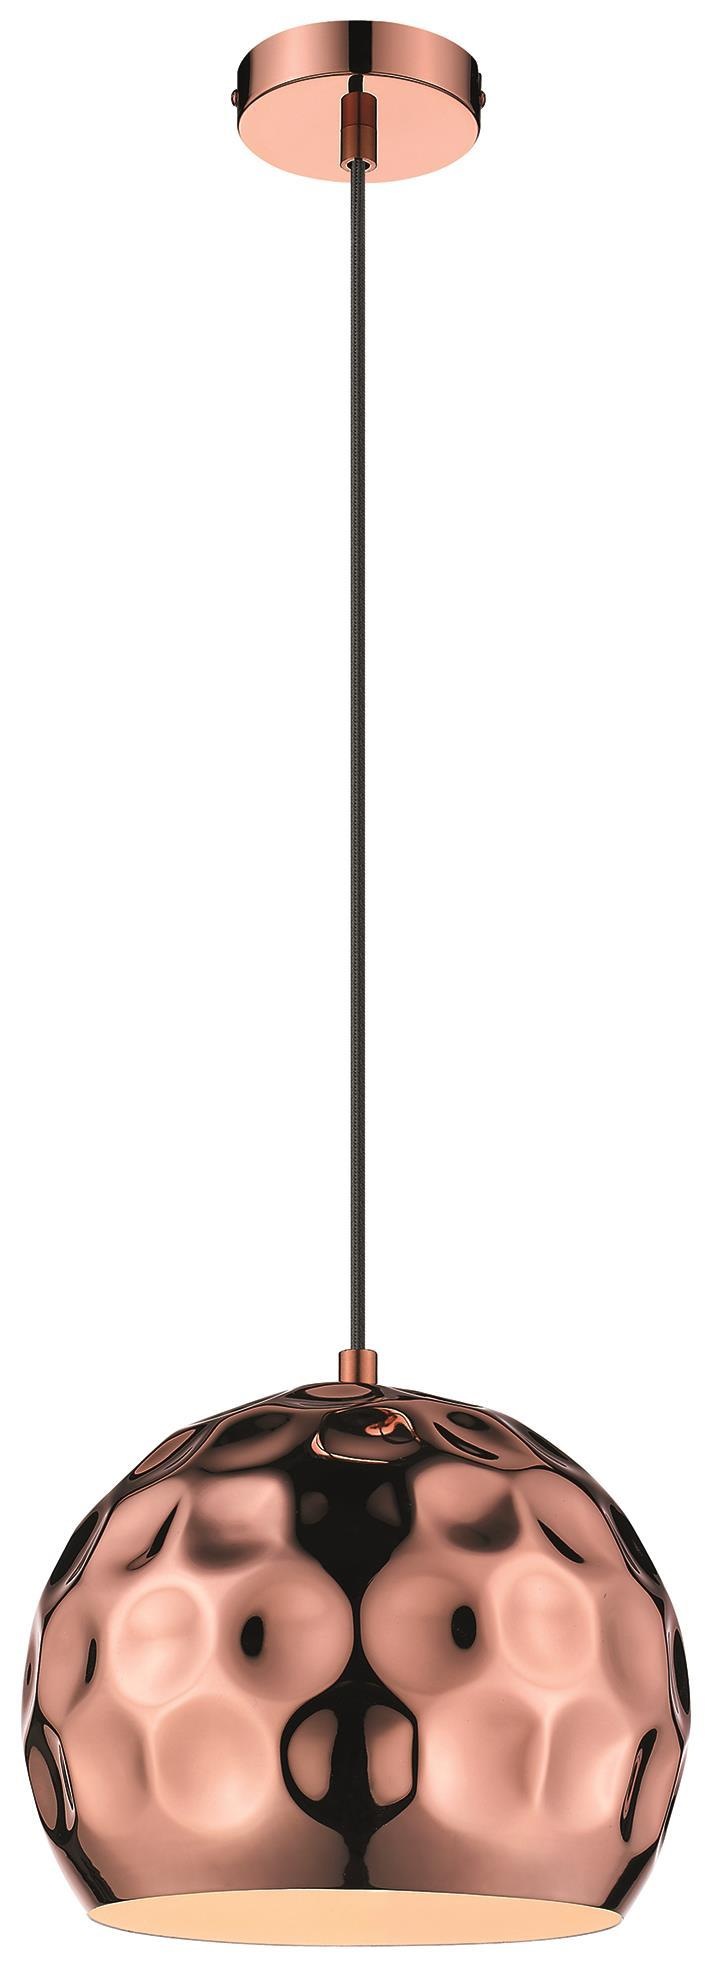 SND Lighting SND159 Chime Single Pendant Copper - SND Electrical Ltd